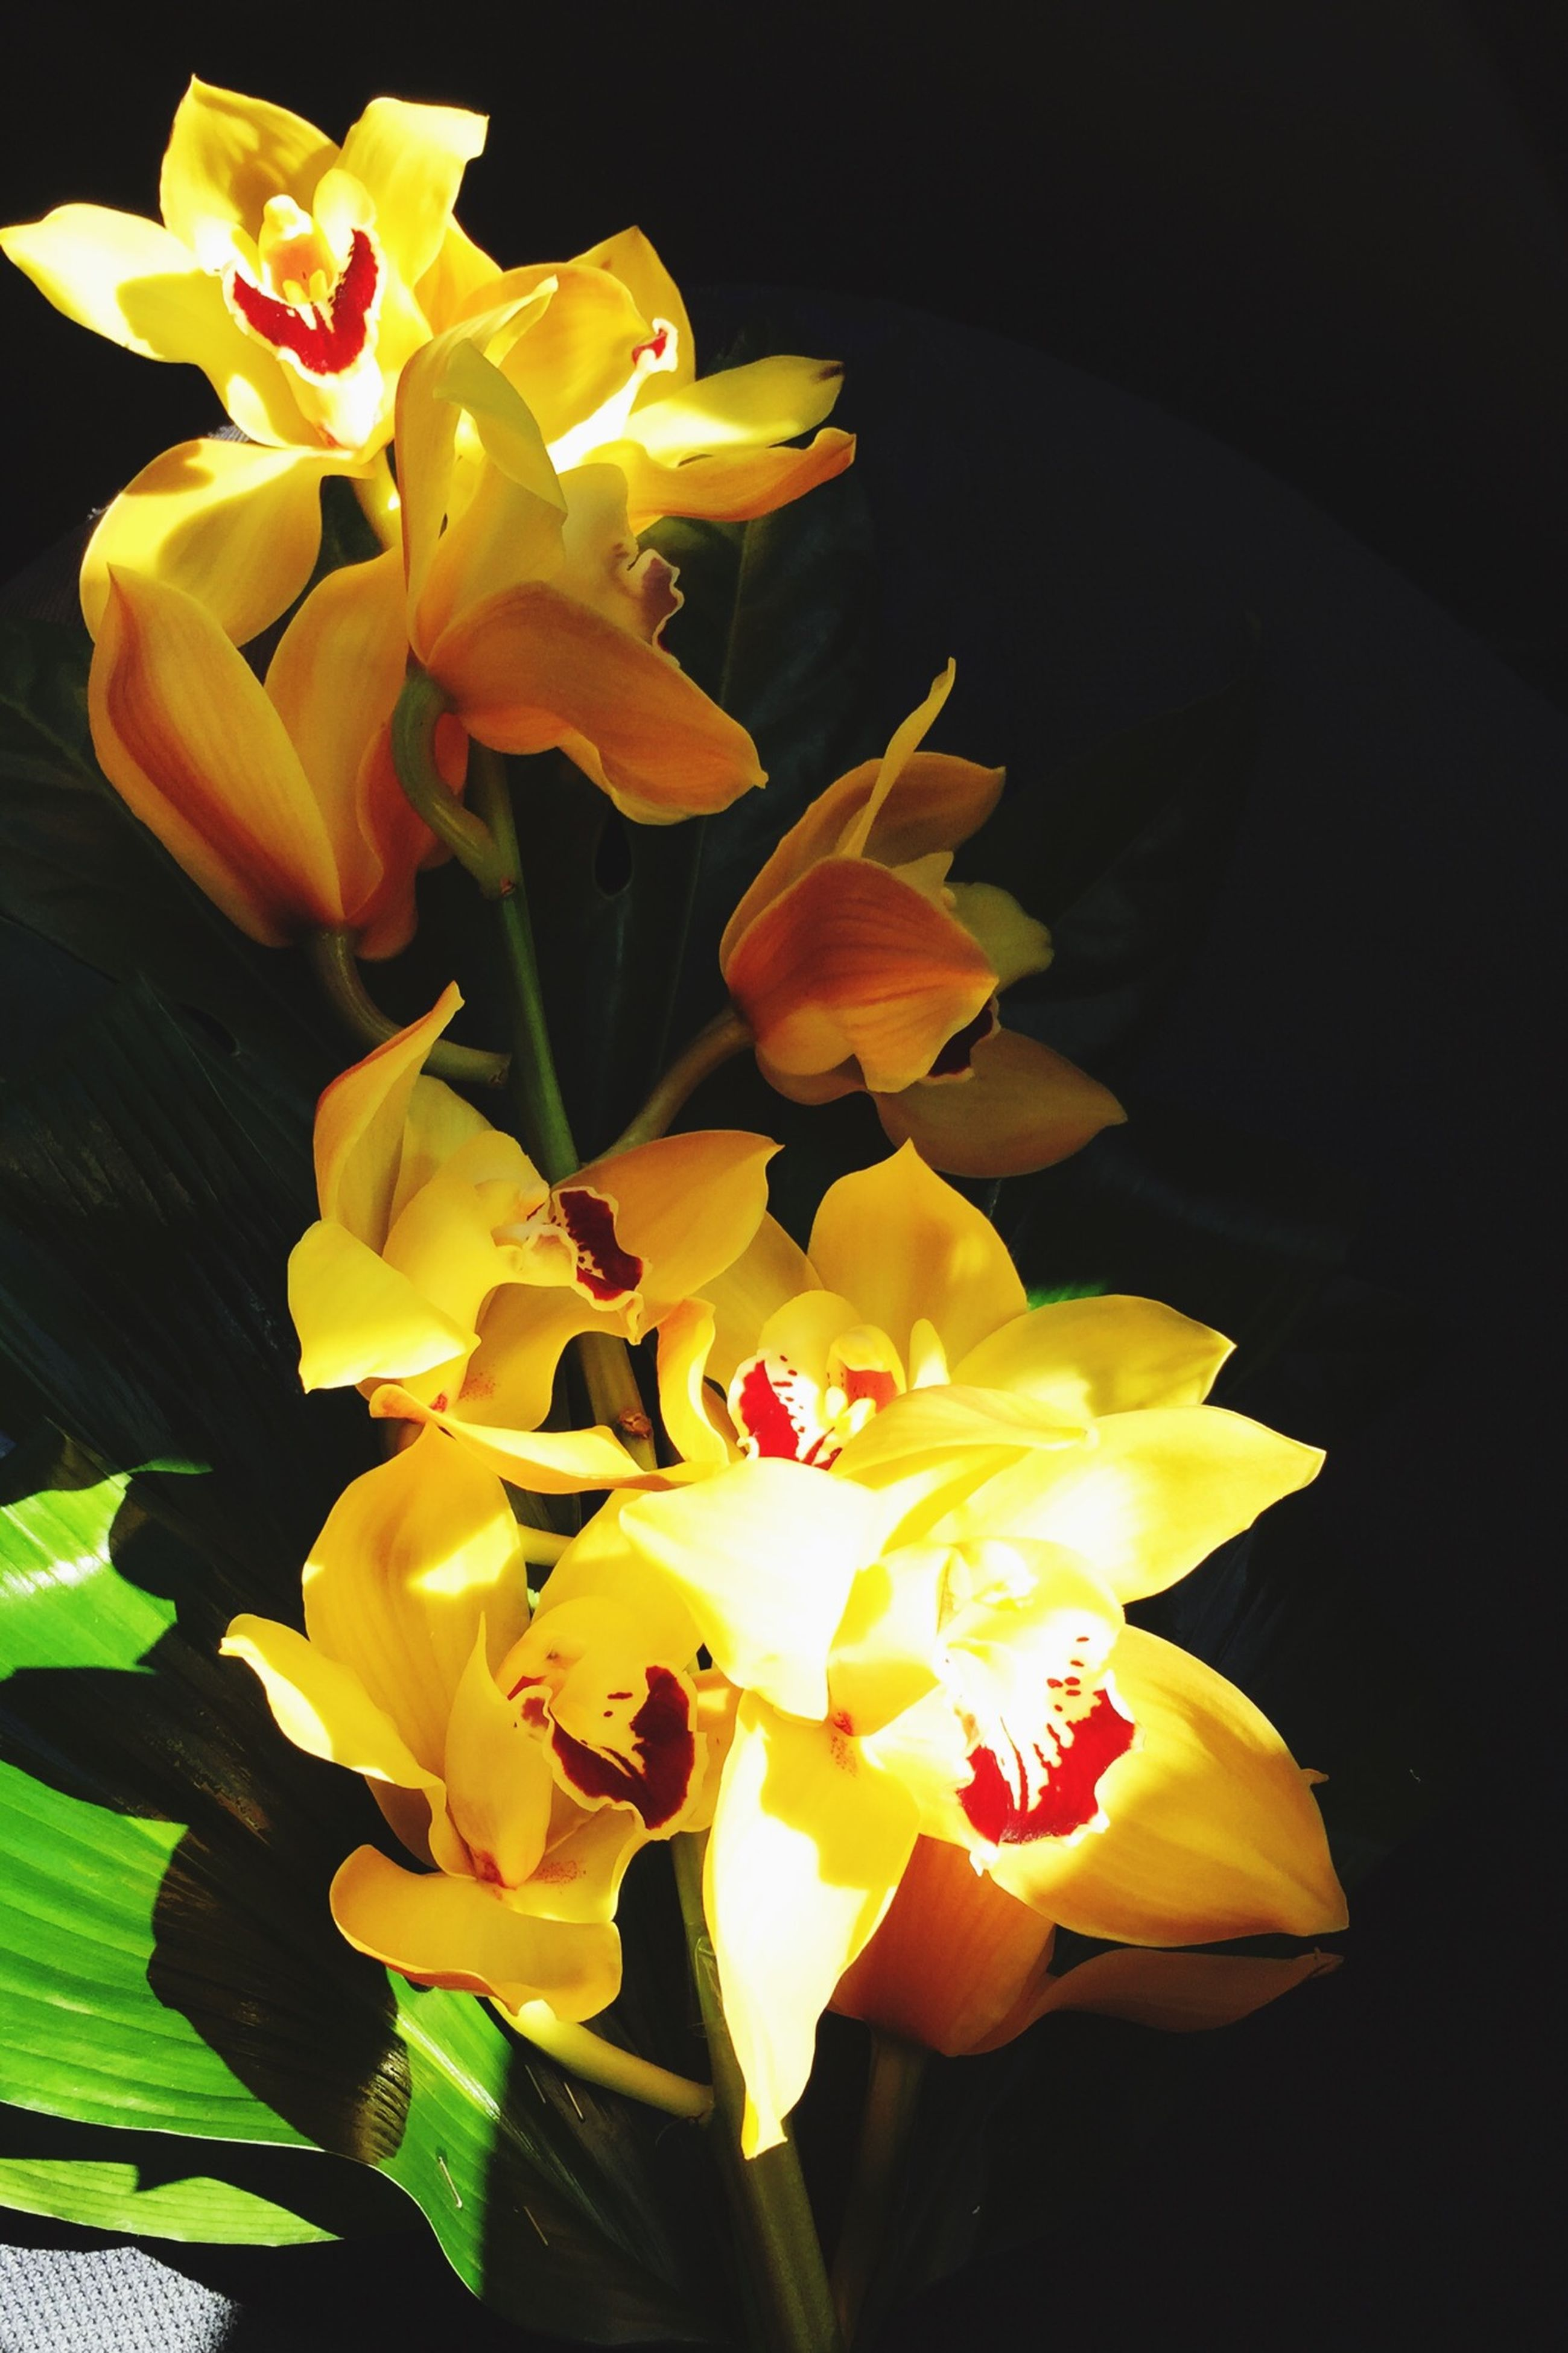 flower, petal, flower head, fragility, freshness, yellow, beauty in nature, growth, close-up, blooming, plant, nature, leaf, in bloom, blossom, stem, no people, focus on foreground, tulip, rose - flower